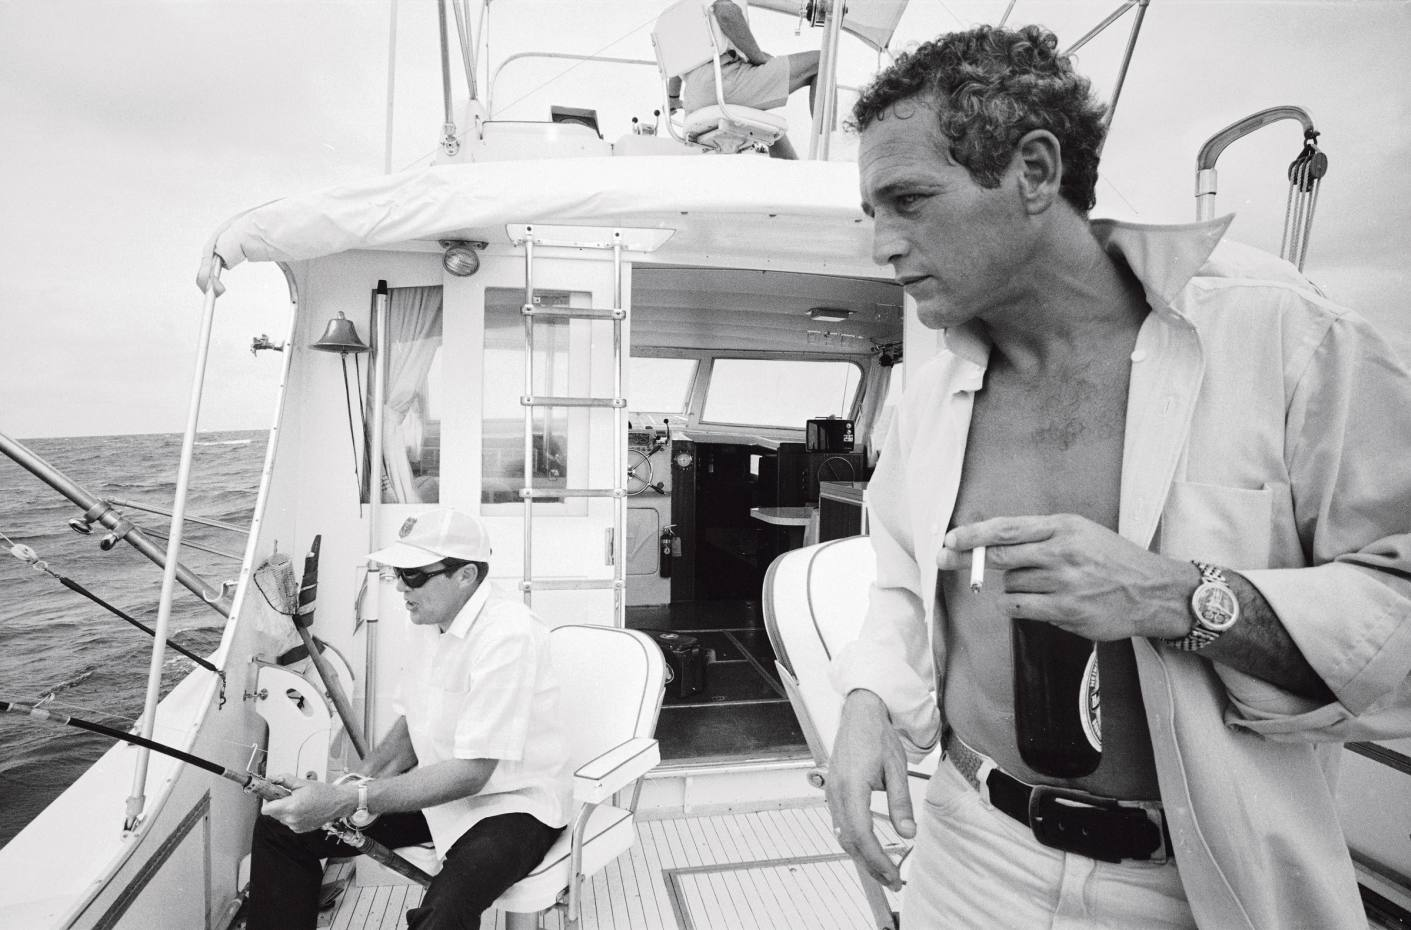 Paul Newman on a fishing boat in Florida, 1967